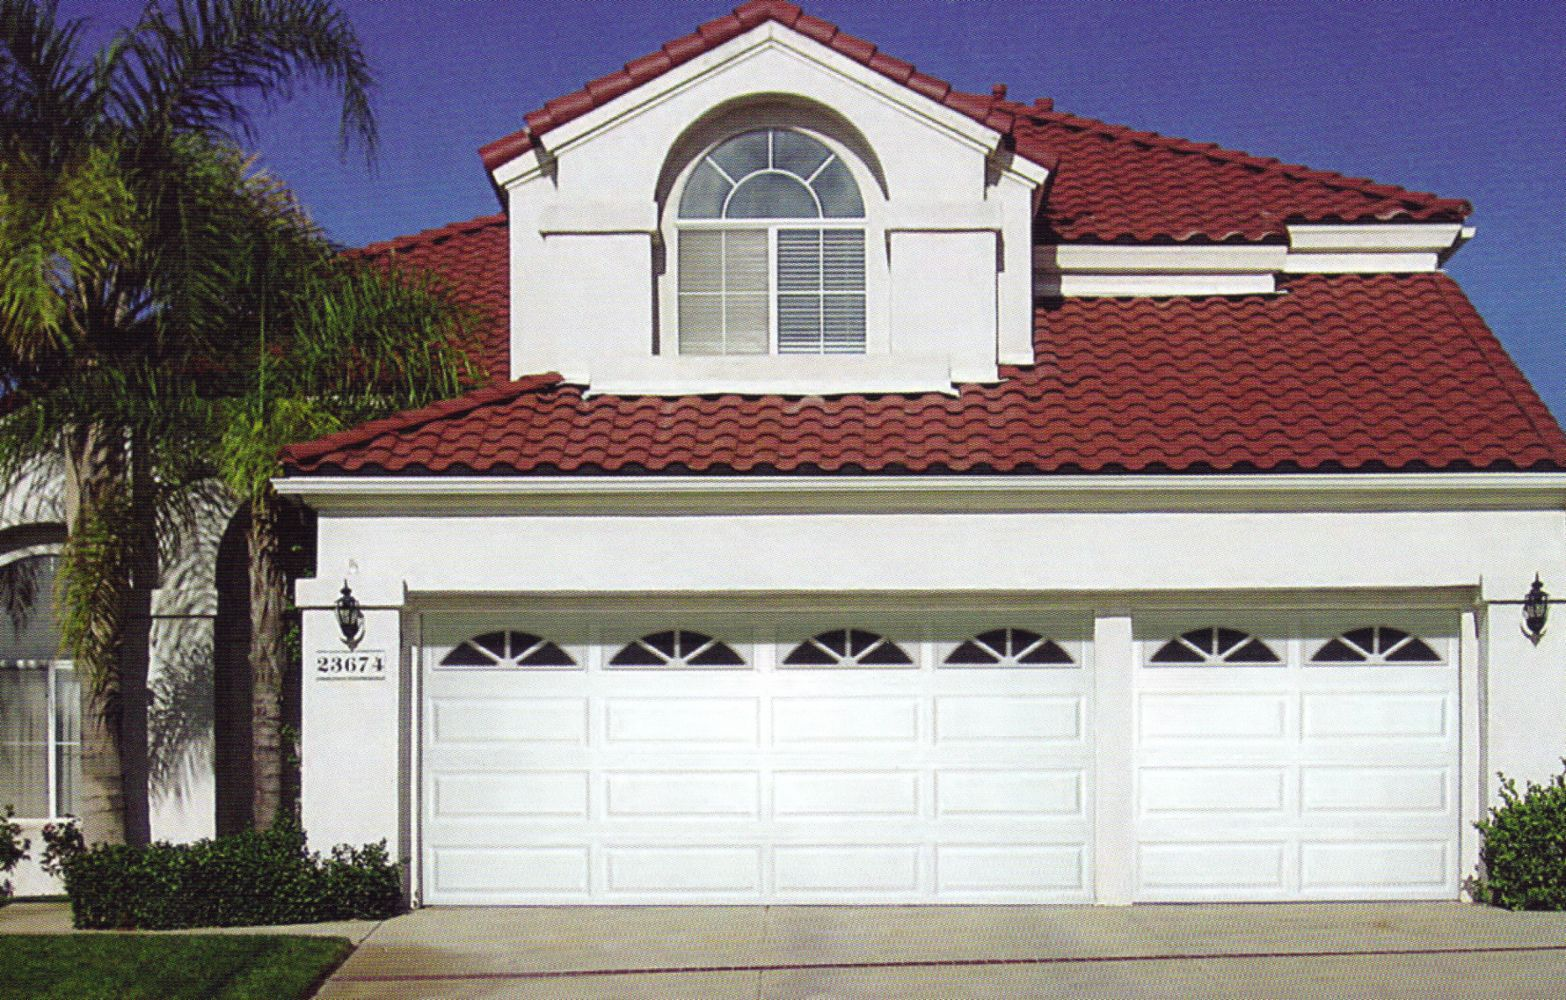 ABC Garage Door Repair Ventura CA Has Been Rated With 22 Experience Points  Based On Fixru0027s Rating System.